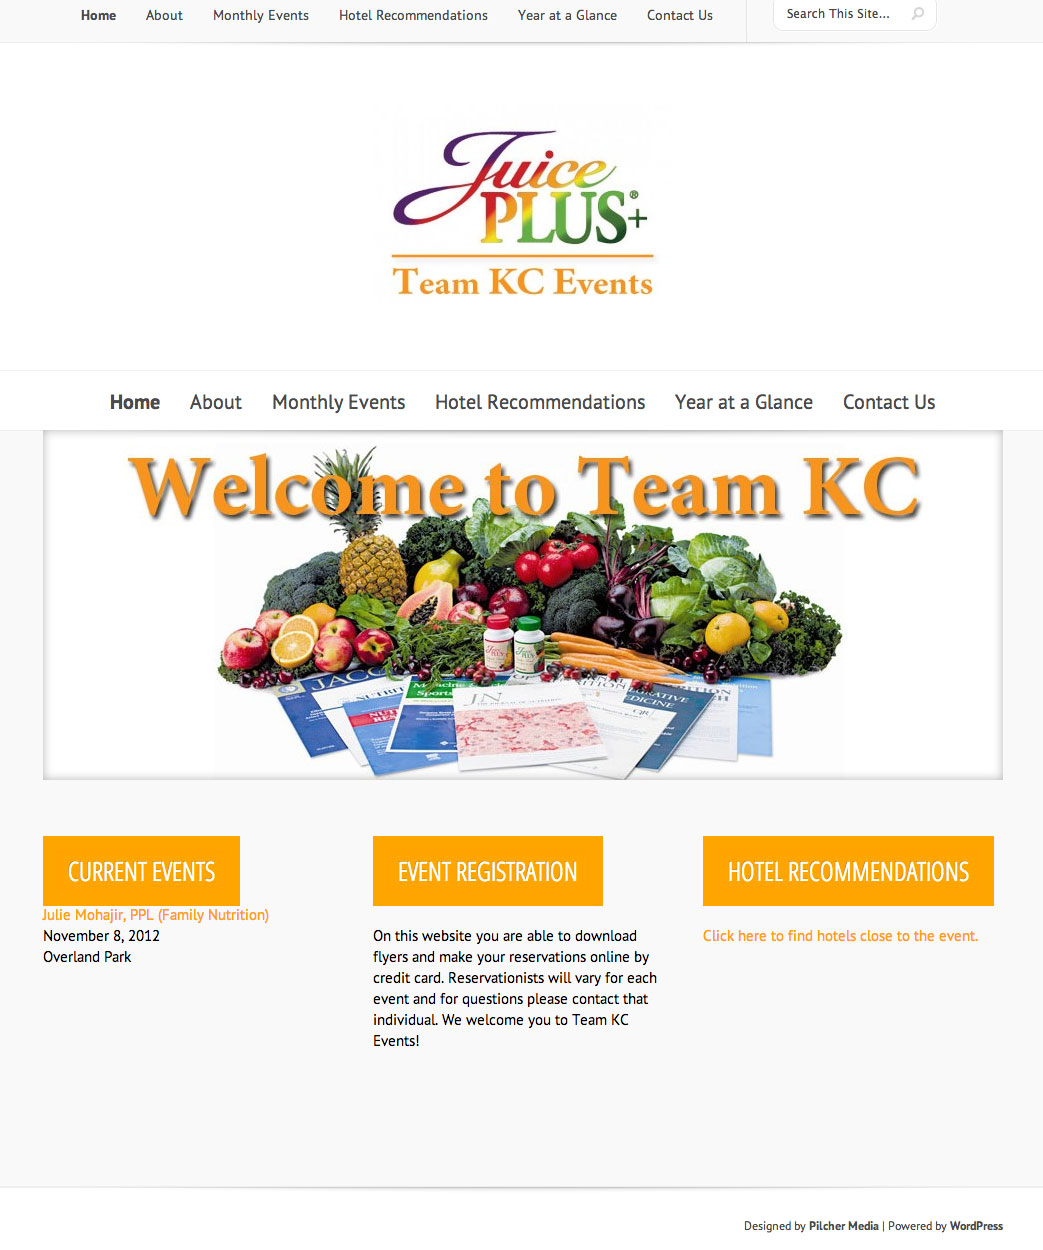 New Website for Team KC JuicePlus!